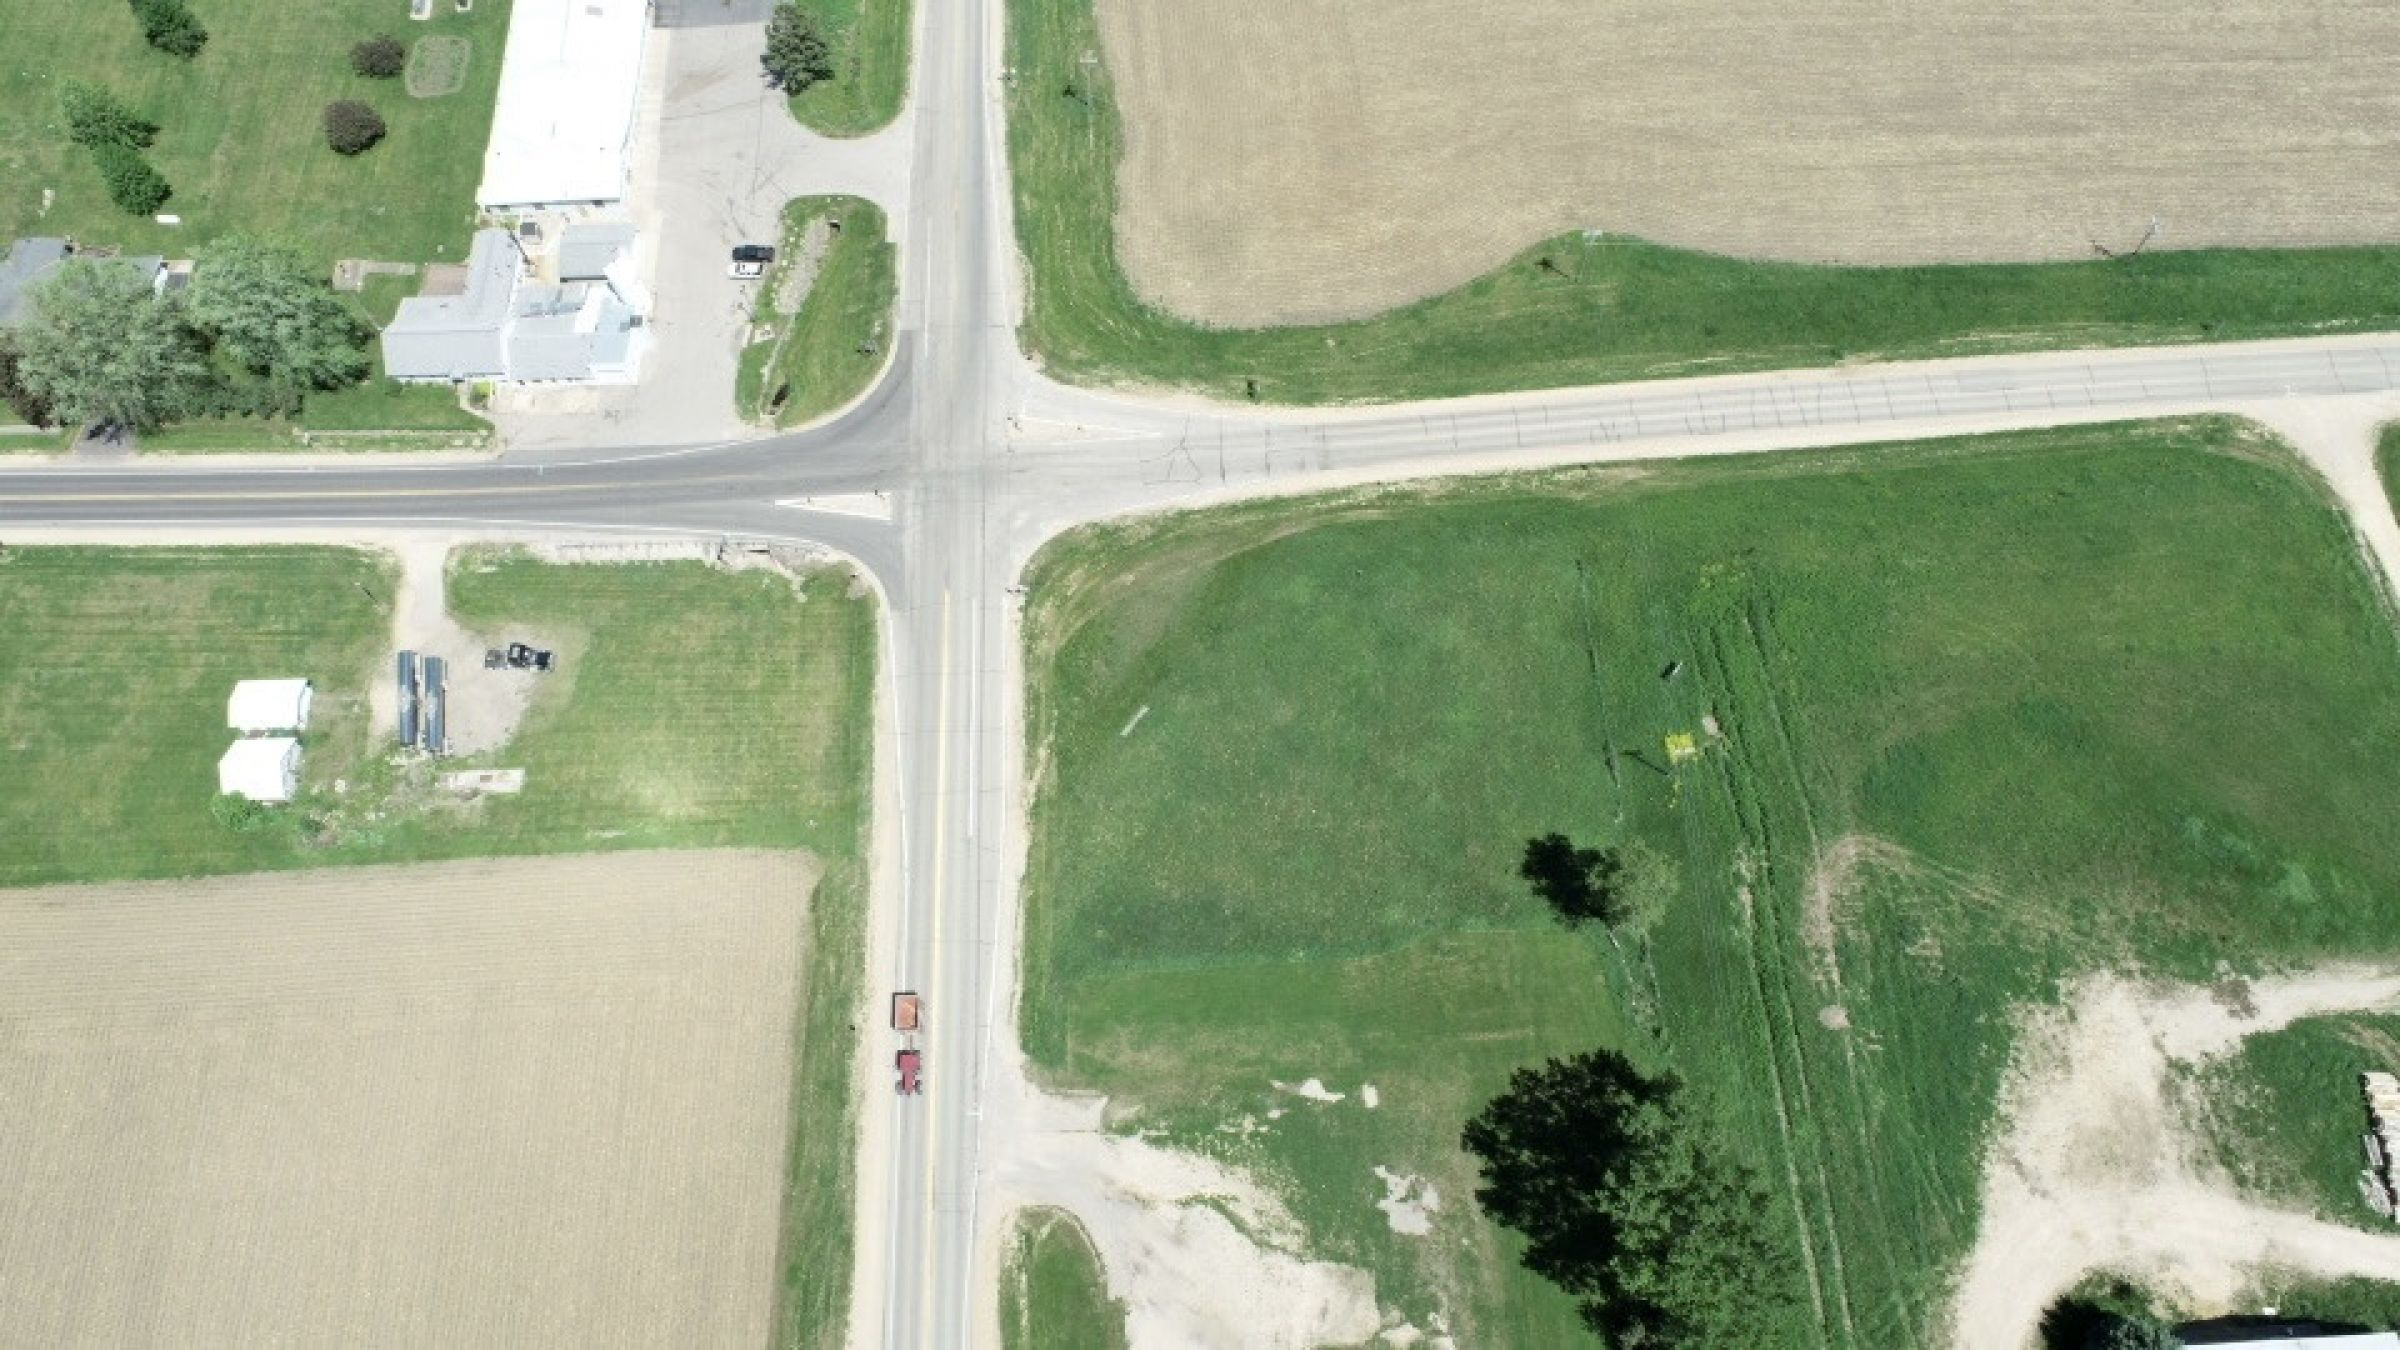 land-commercial-lafayette-county-wisconsin-1-acres-listing-number-15560-11-2021-05-28-185525.jpg